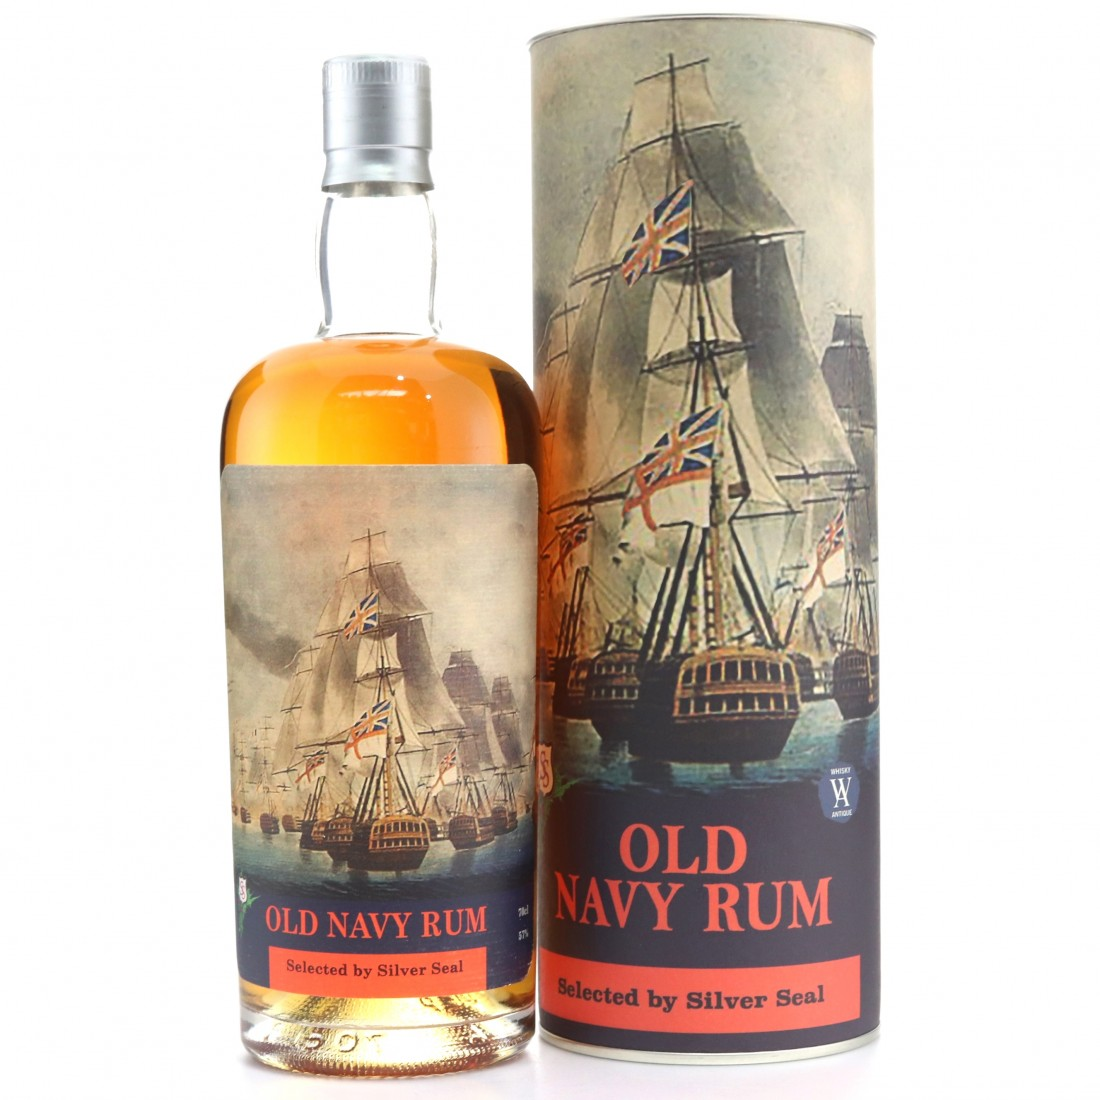 Silver Seal Old Navy Rum